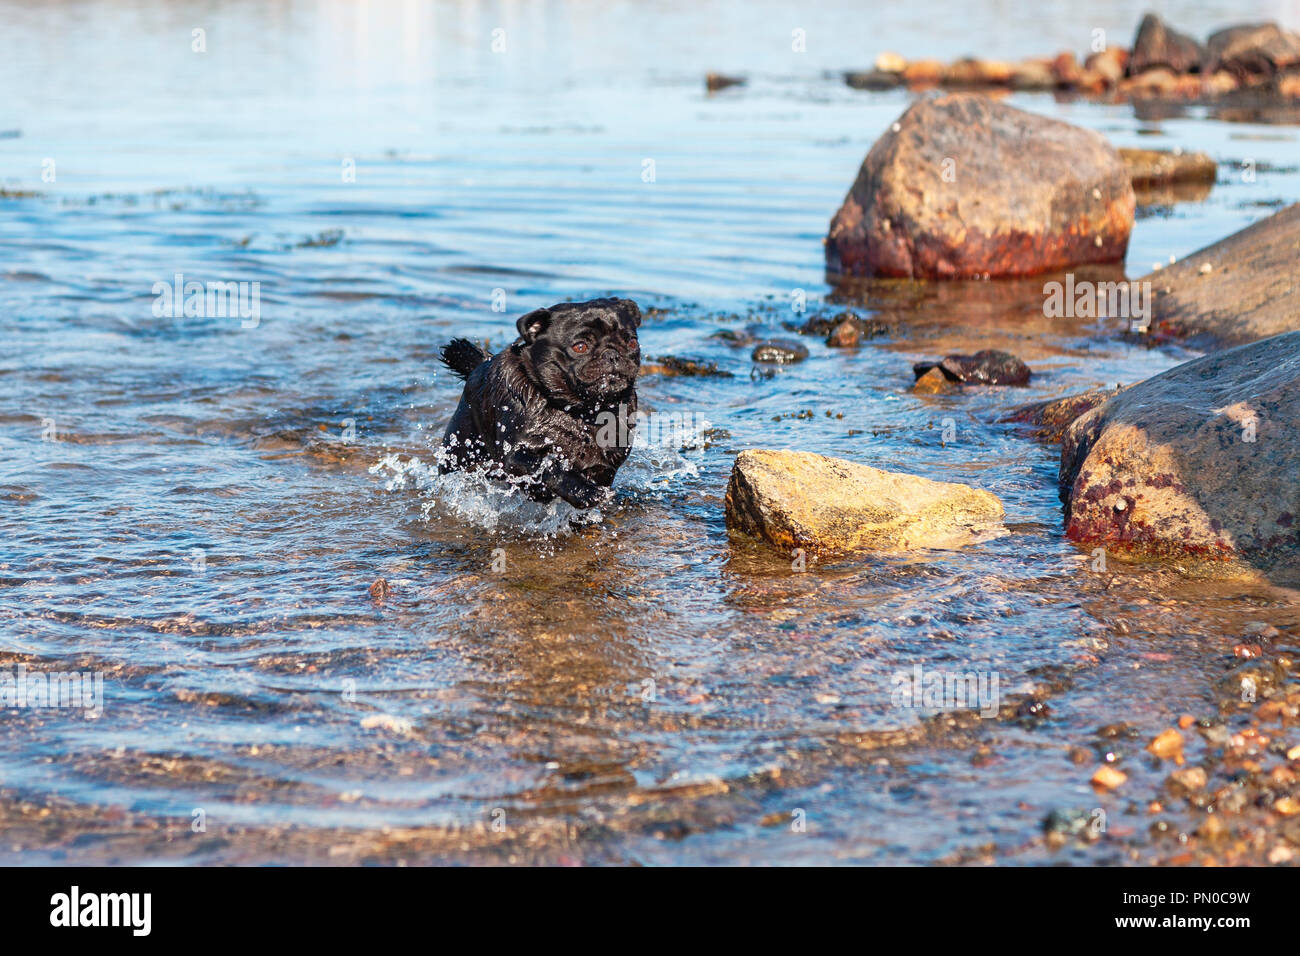 Small happy black pug dog running fast in the water at rocky beach in summer - Stock Image